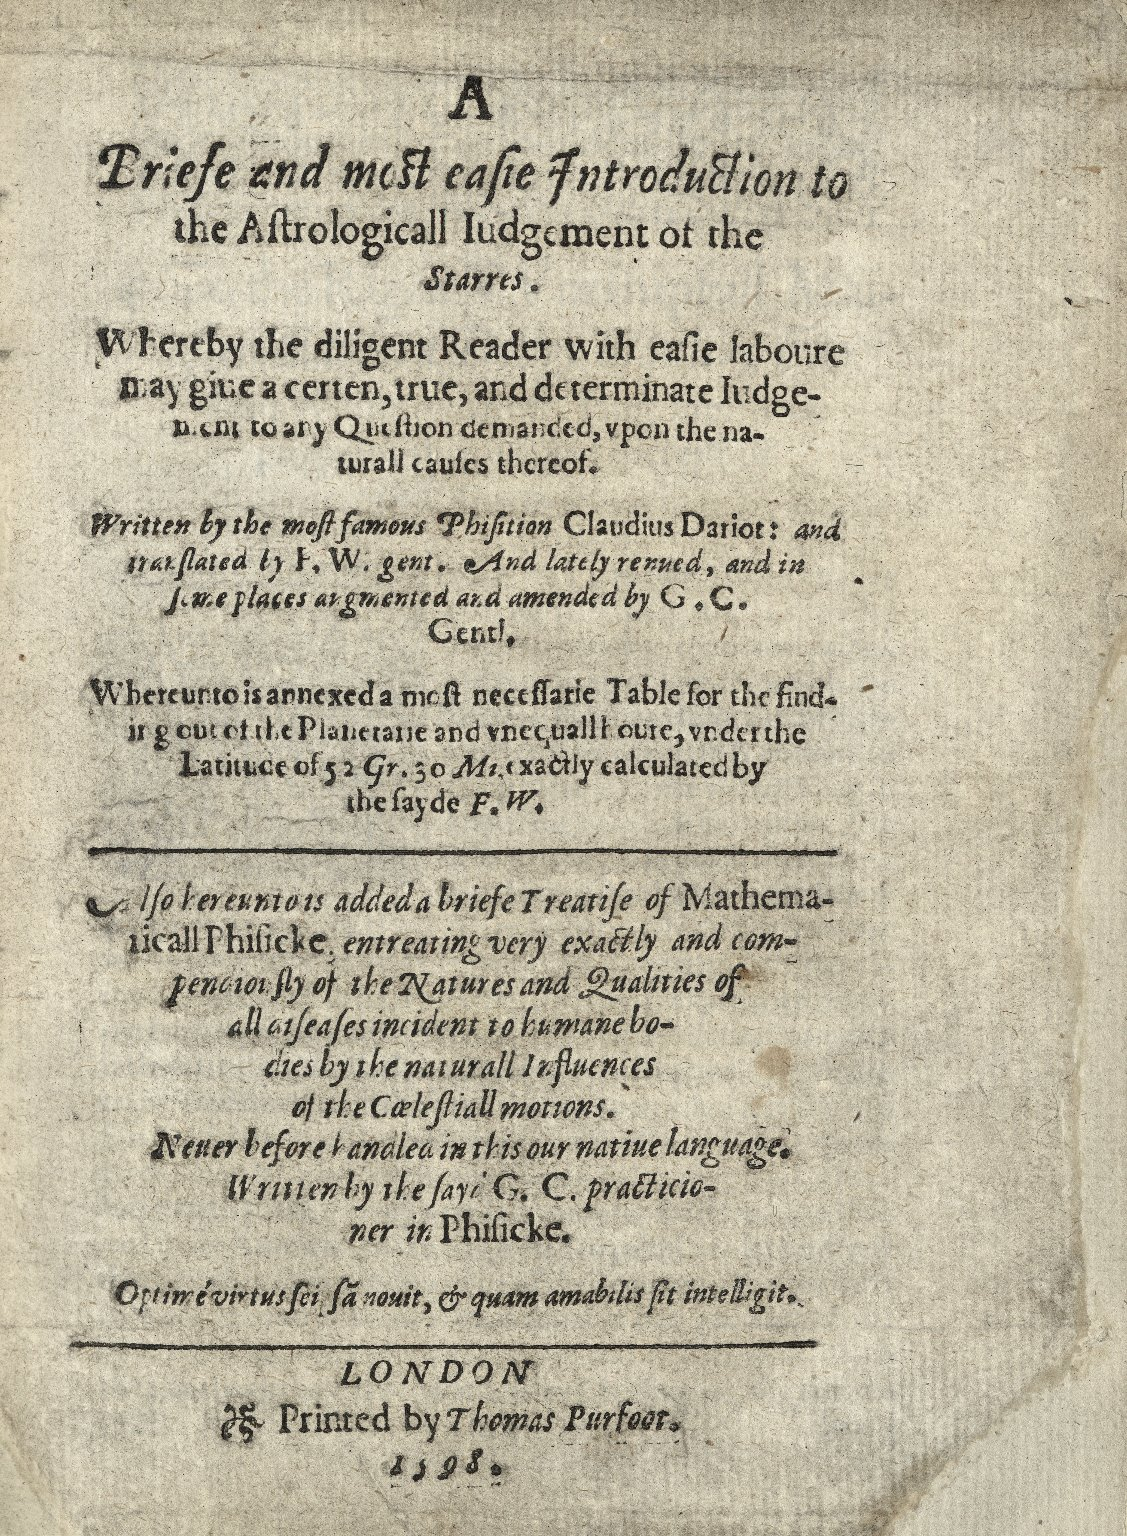 A briefe and most easie introduction to the astrologicall iudgement of the starres.